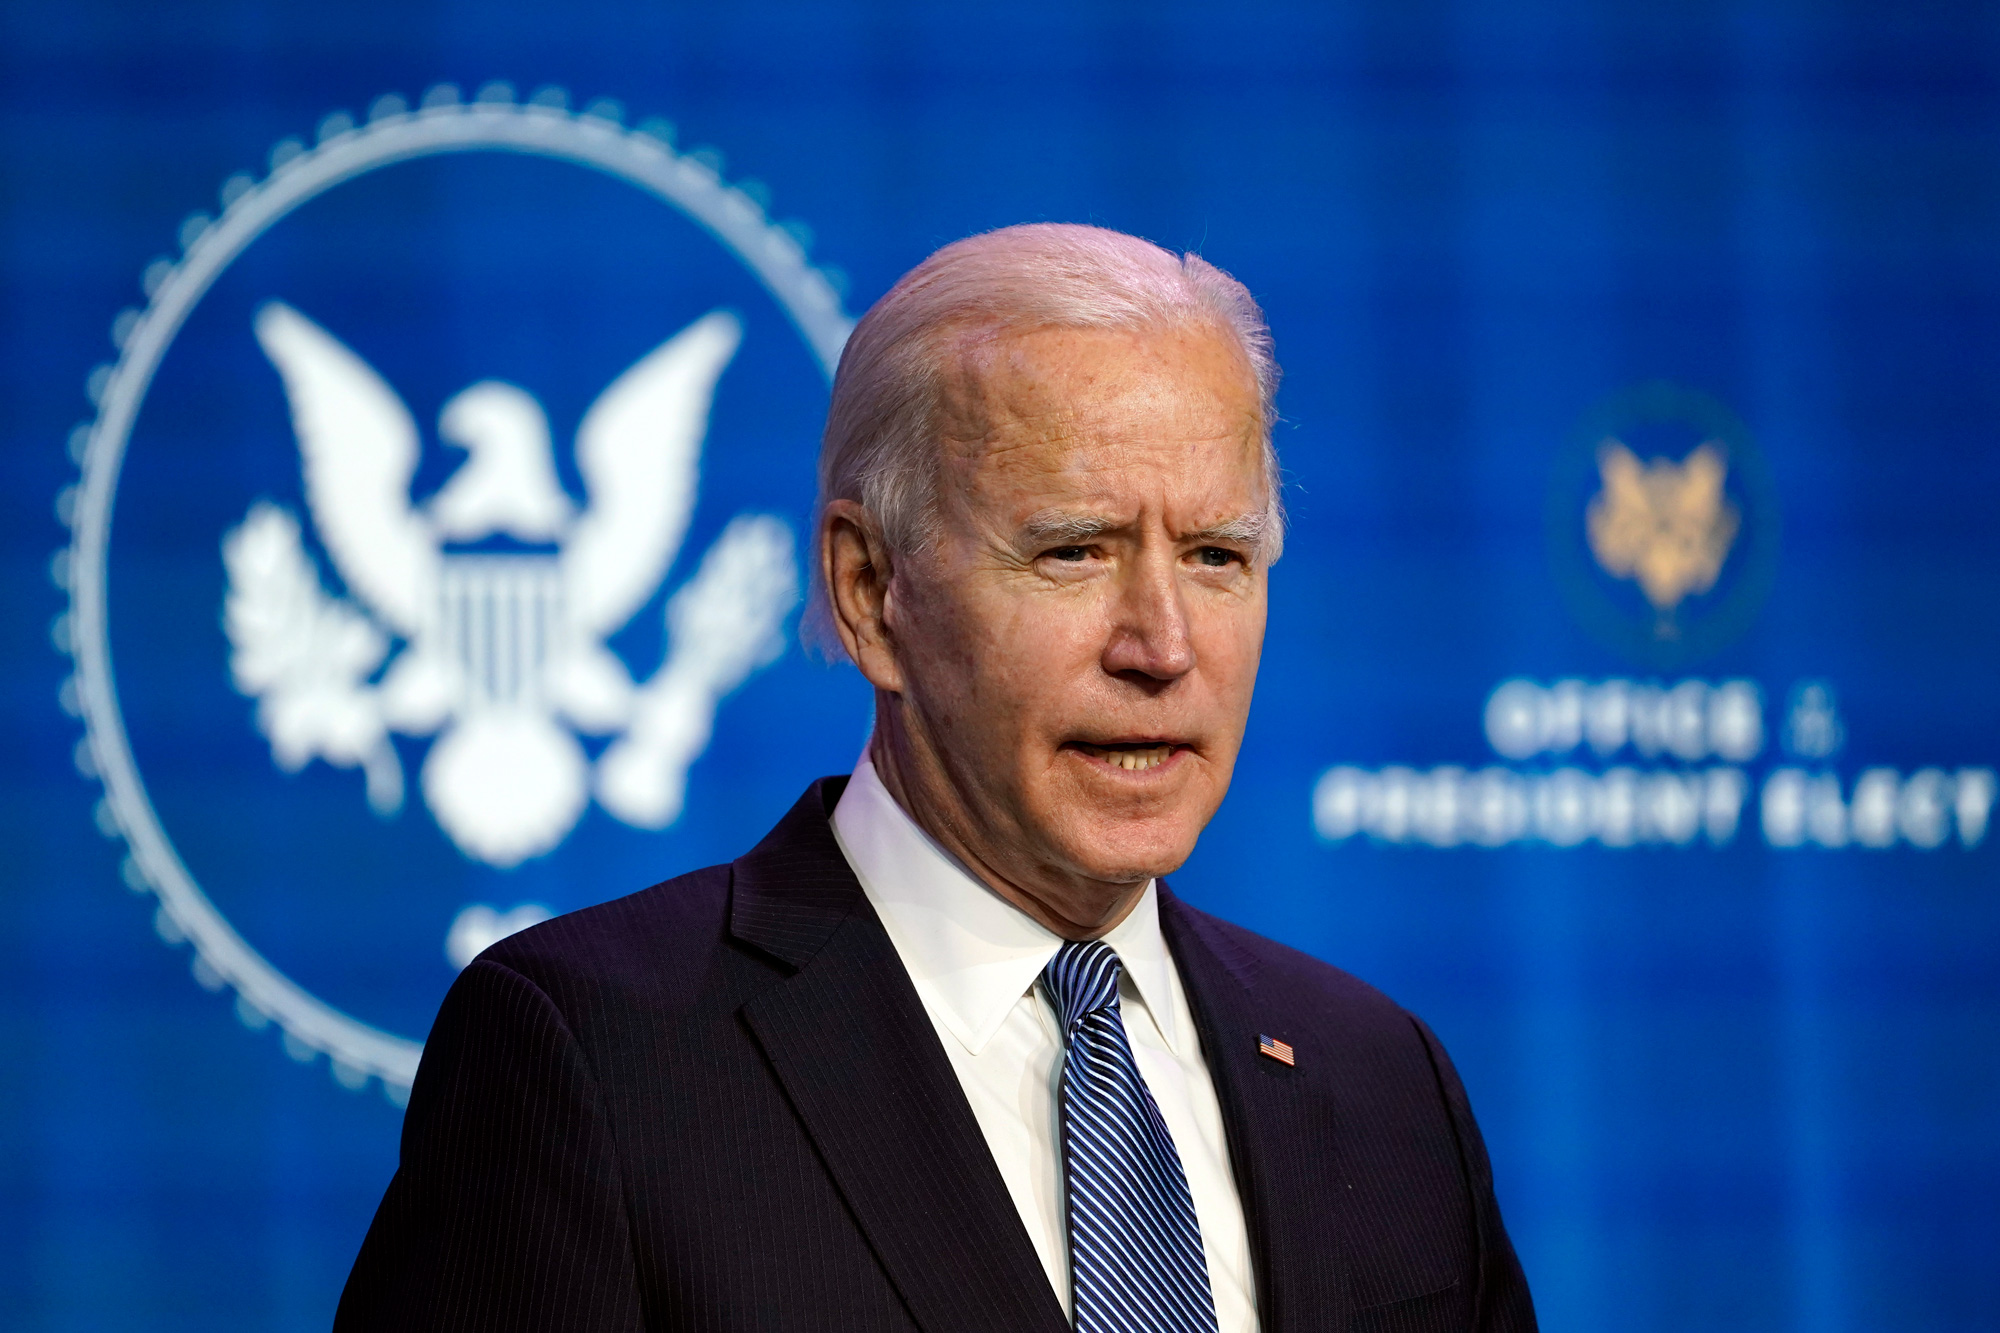 President-elect Joe Biden speaks during an event at The Queen theater in Wilmington, Delaw, Thursday, January 7.